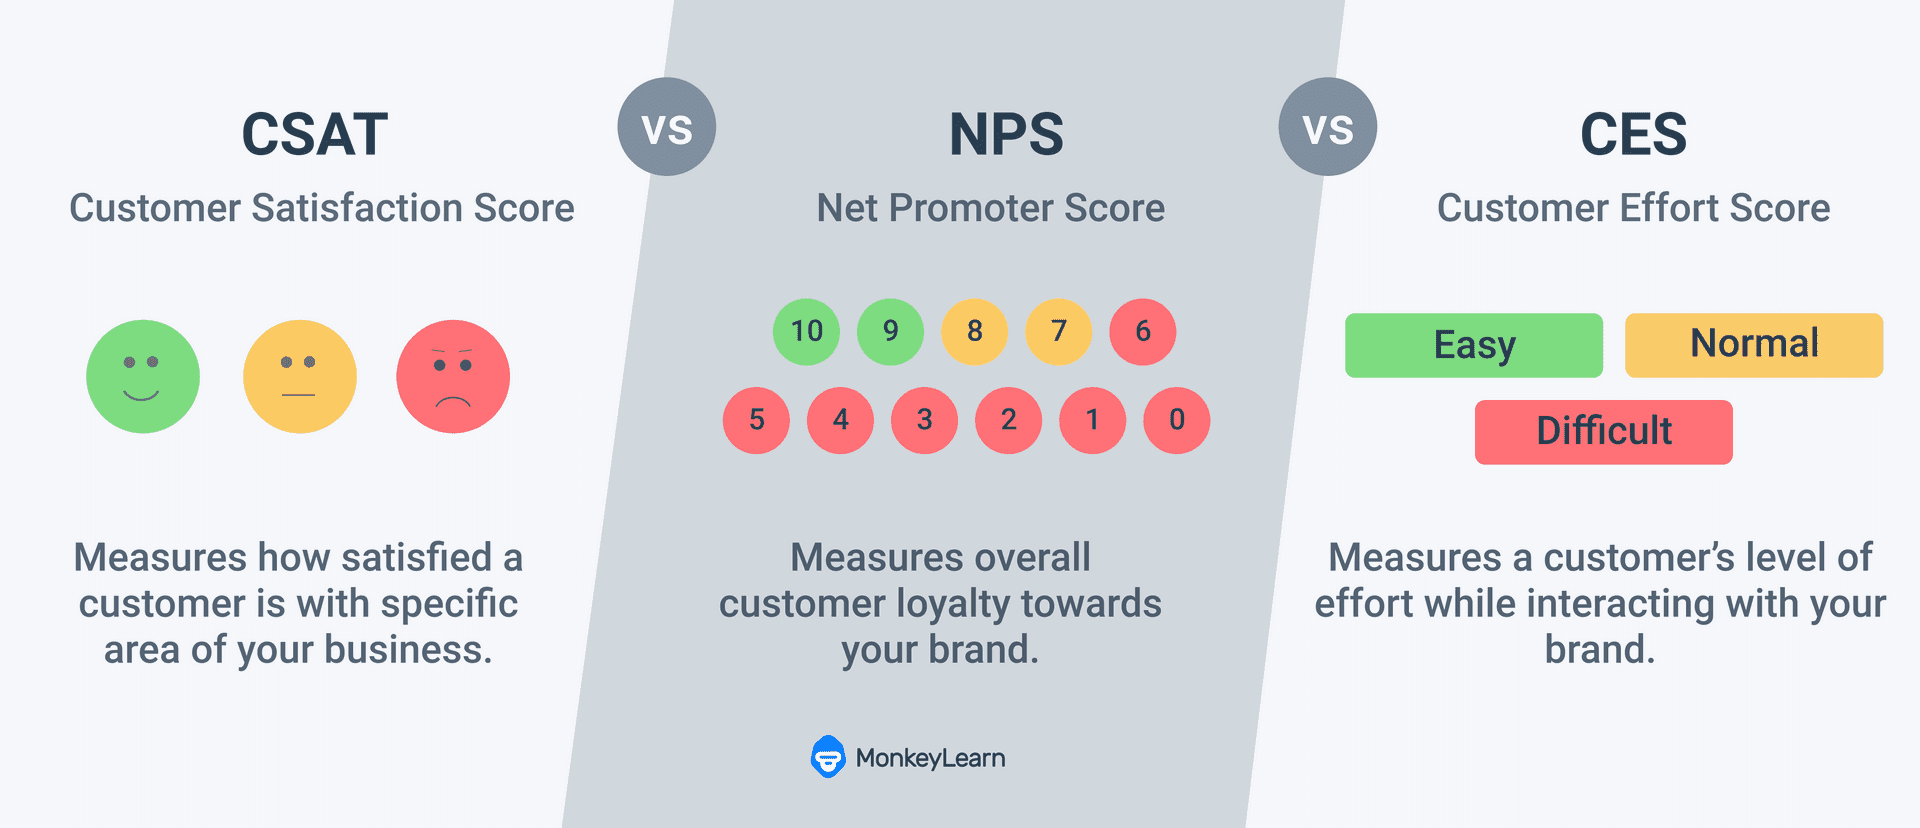 CSAT vs NPS vs . CSAT measures customer satisfaction in one specific area. NPS measures overall customer loyalty to your brand